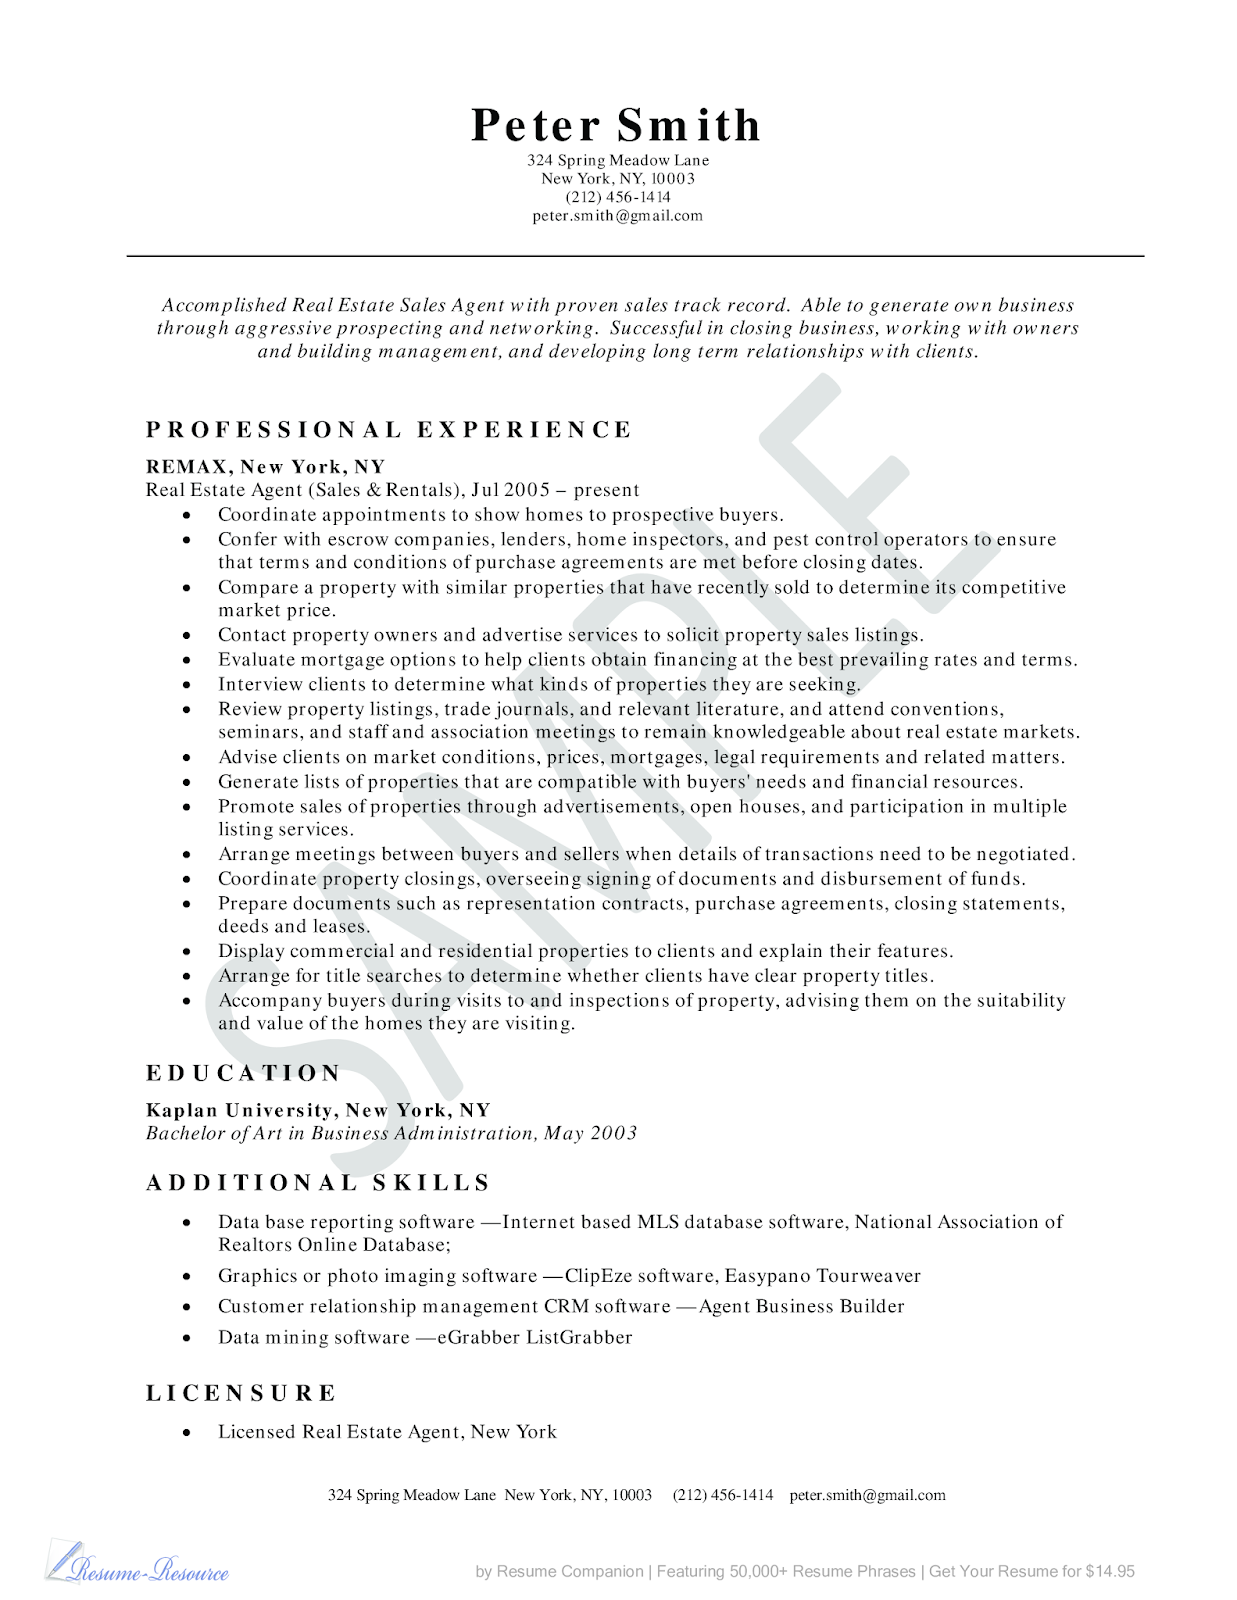 real estate agent resume example, real estate agent resume sample, real estate agent cv sample, real estate agent cv example, real estate agent resume sample no experience, new real estate agent resume example, real estate sales agent resume sample, commercial real estate agent resume sample, example of a real estate agent resume, entry level real estate agent resume example